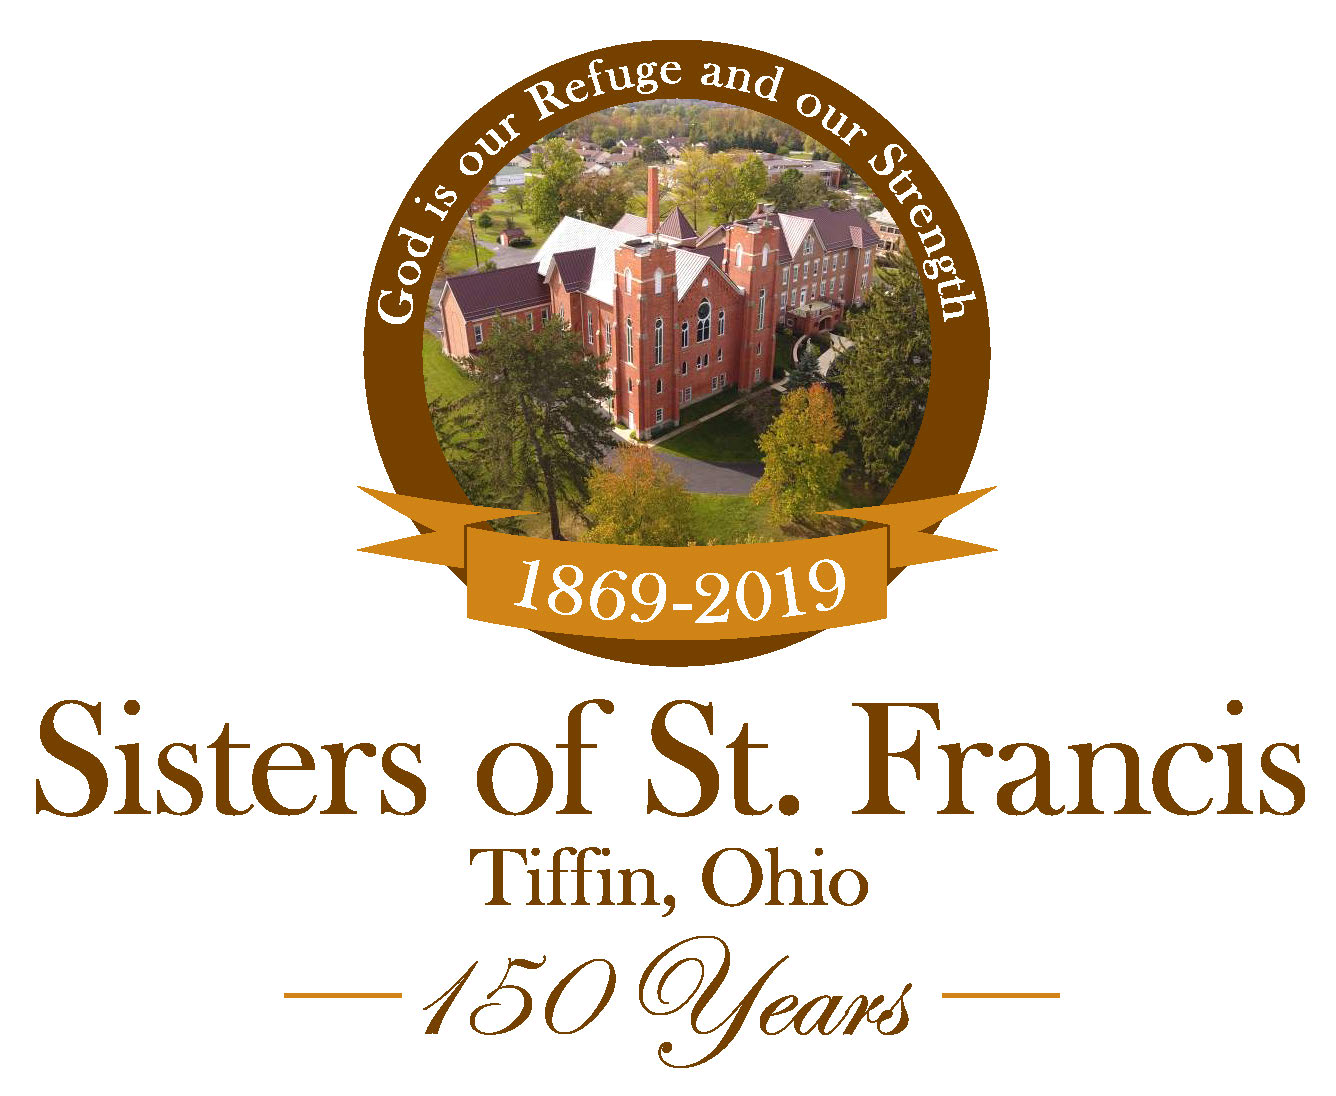 Sisters of St. Francis celebrate 150 years …